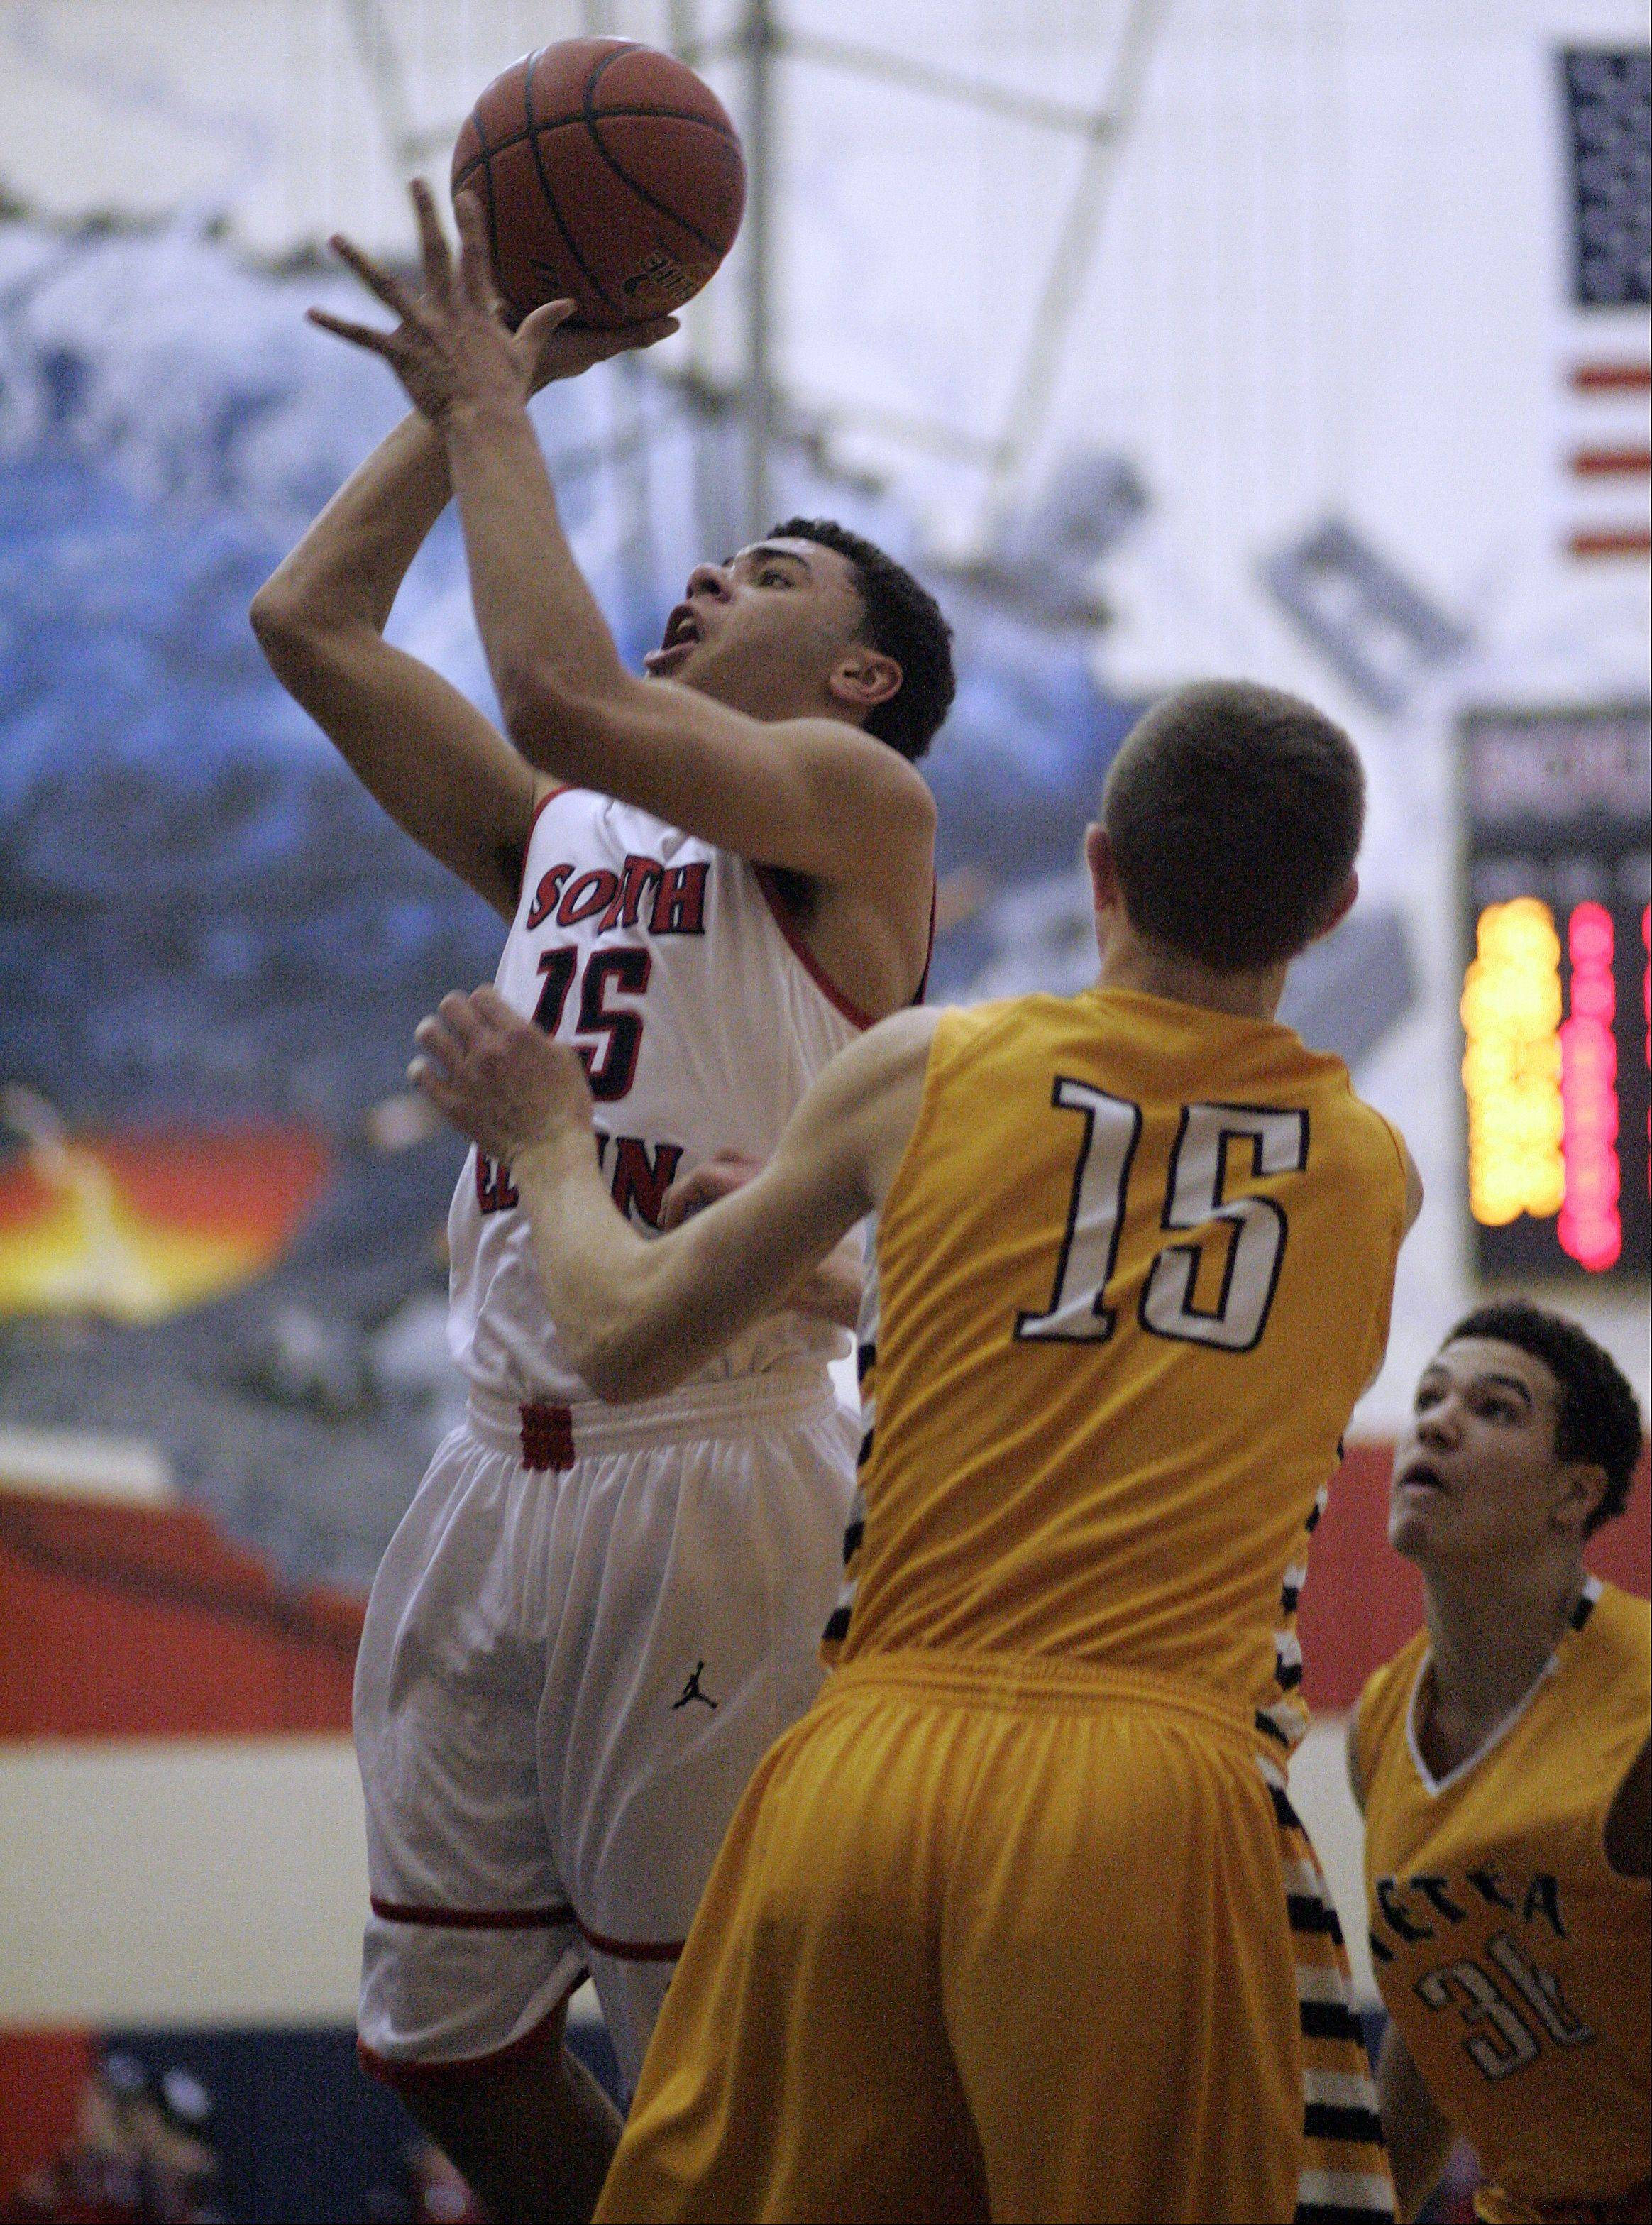 Images from the Metea Valley vs. South Elgin boys basketball game Friday, January 24, 2014.